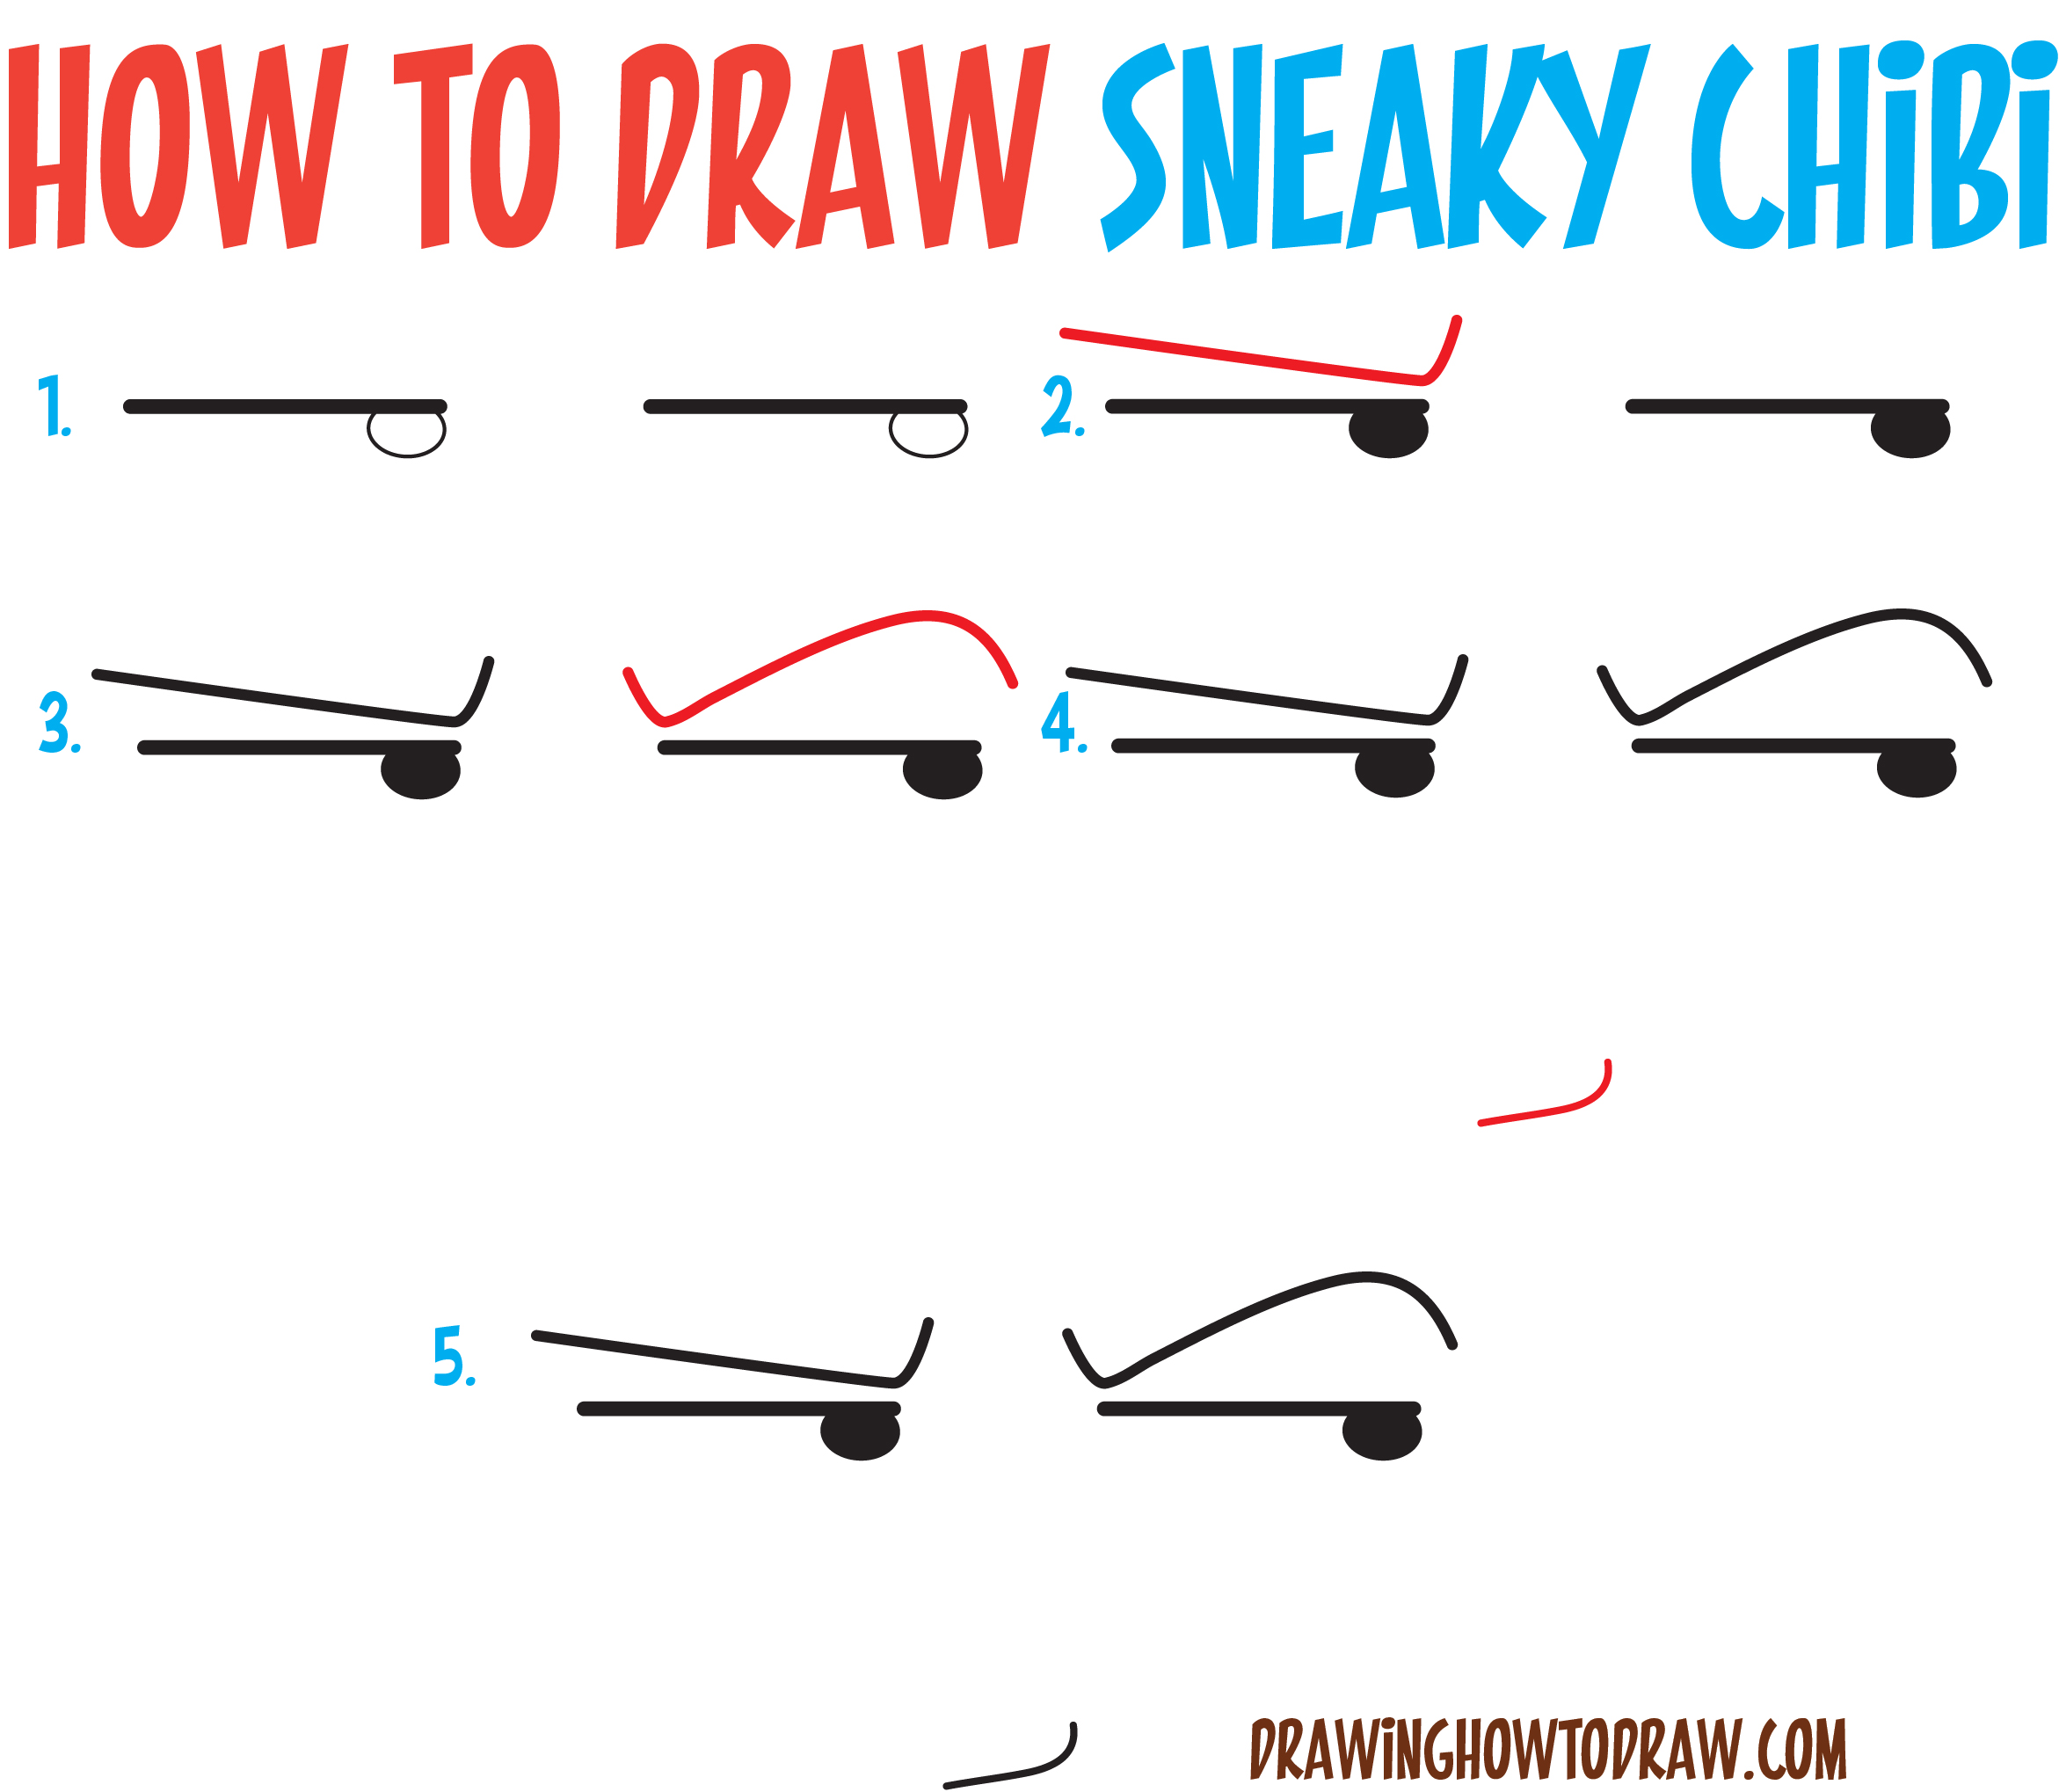 How to Draw Sneaky / Devious / Evil Chibi Expressions / Emotions in Easy Step by Step Drawing Tutorial for Beginners